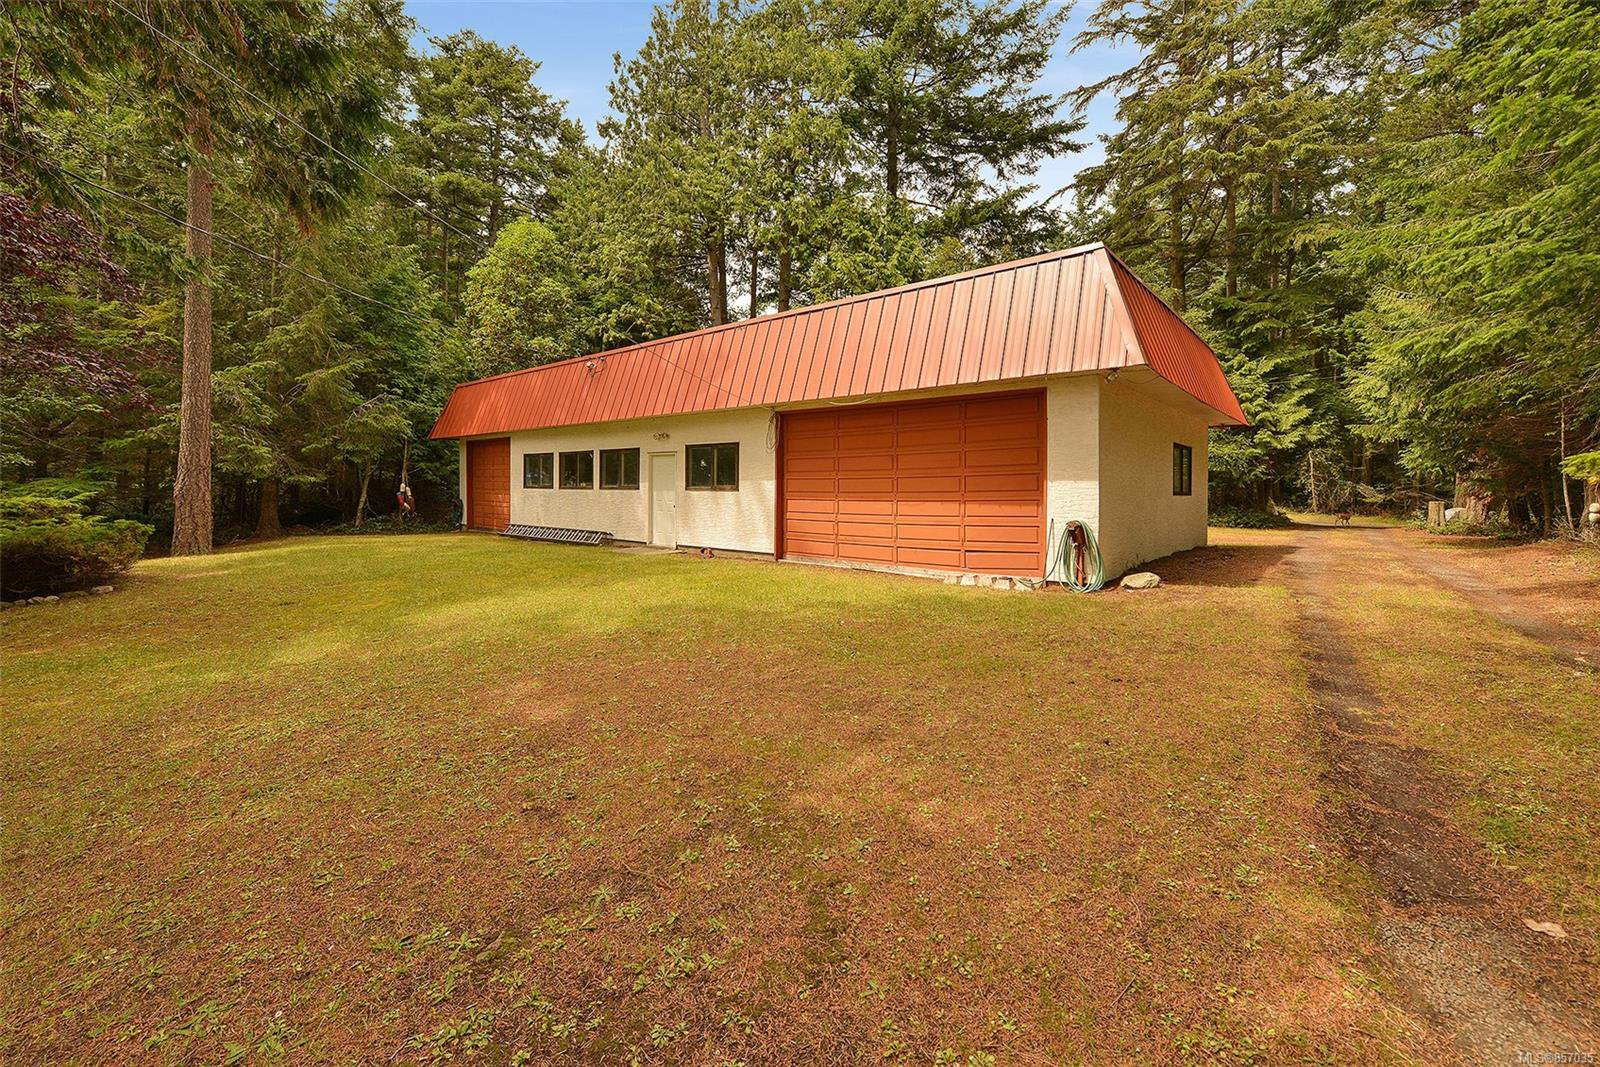 Photo 36: Photos: 172 Cliffside Rd in : GI Saturna Island House for sale (Gulf Islands)  : MLS®# 857035